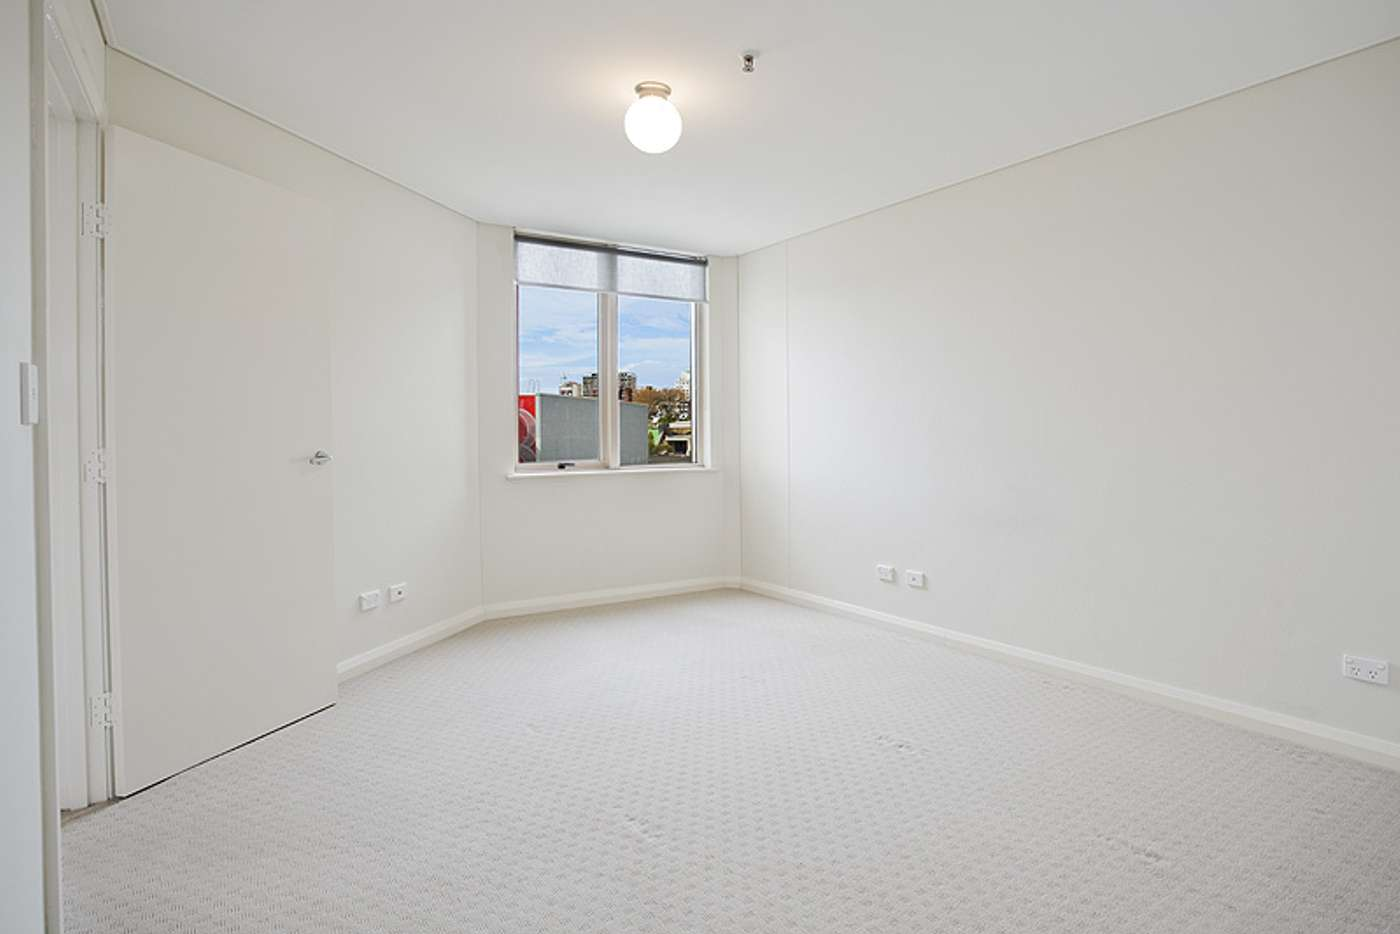 Sixth view of Homely apartment listing, 63 Crown Street, Woolloomooloo NSW 2011